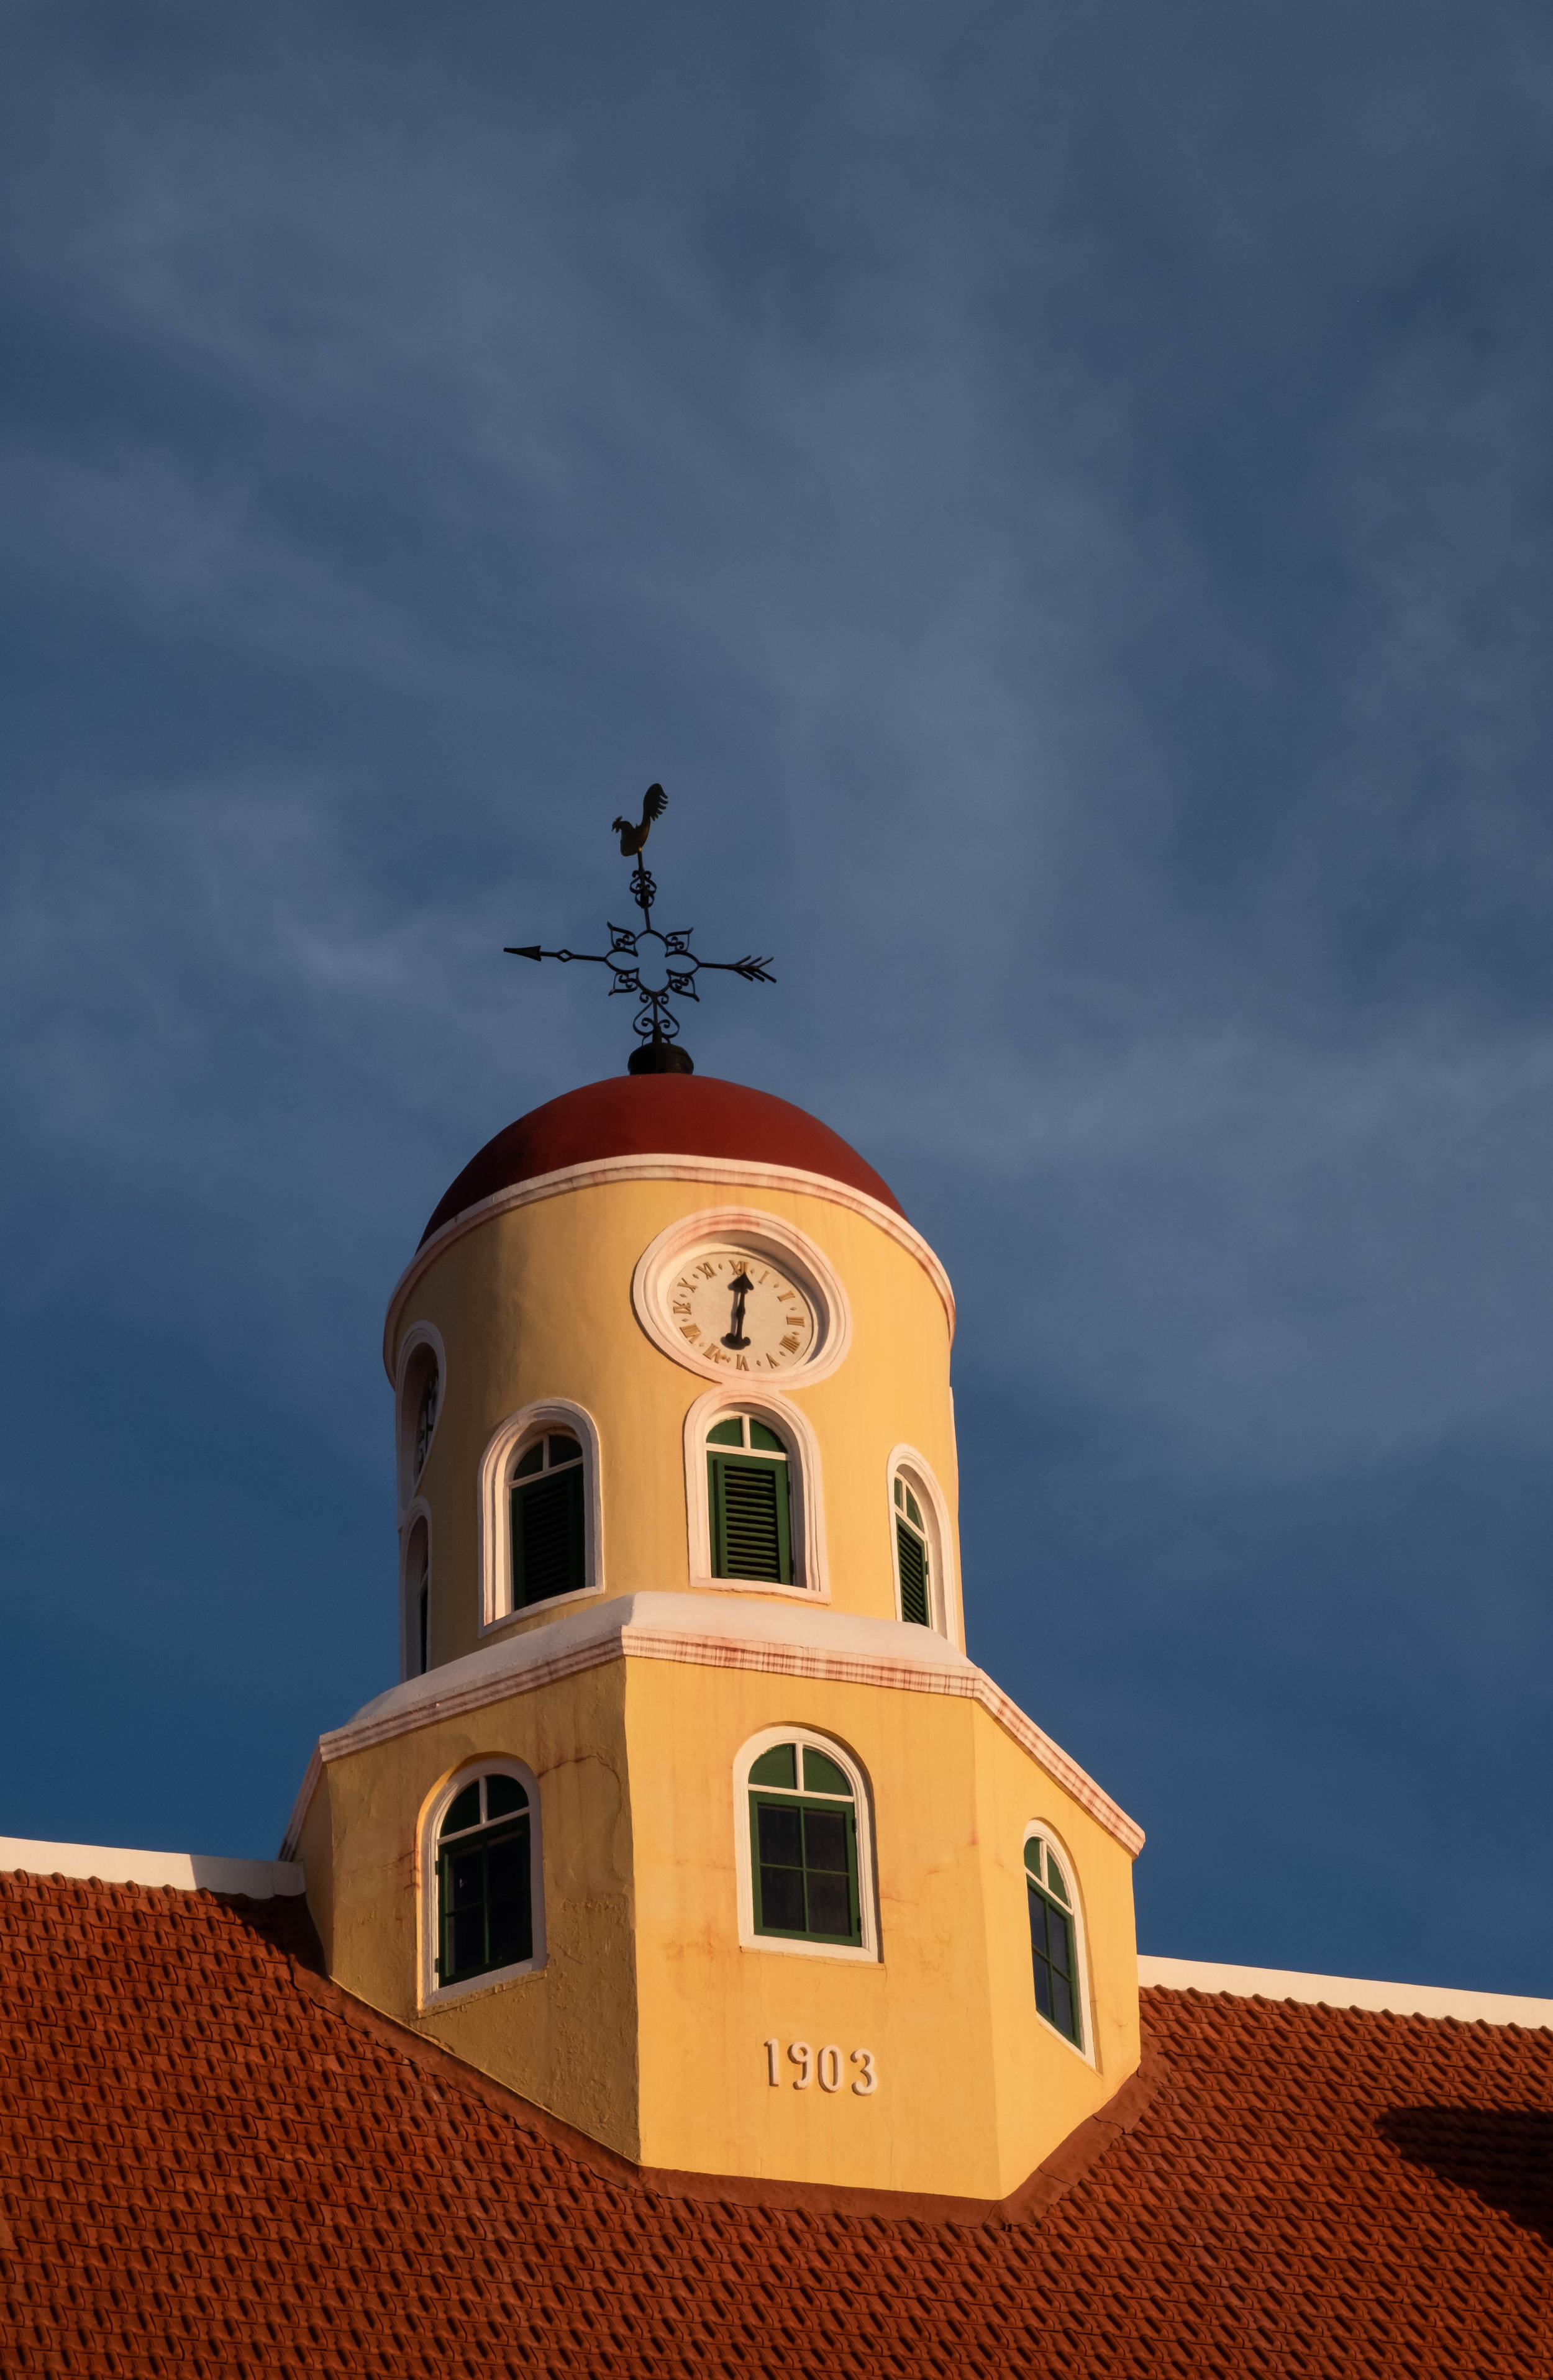 ROSE & IVY The Lively Town of Willemstad, Curacao